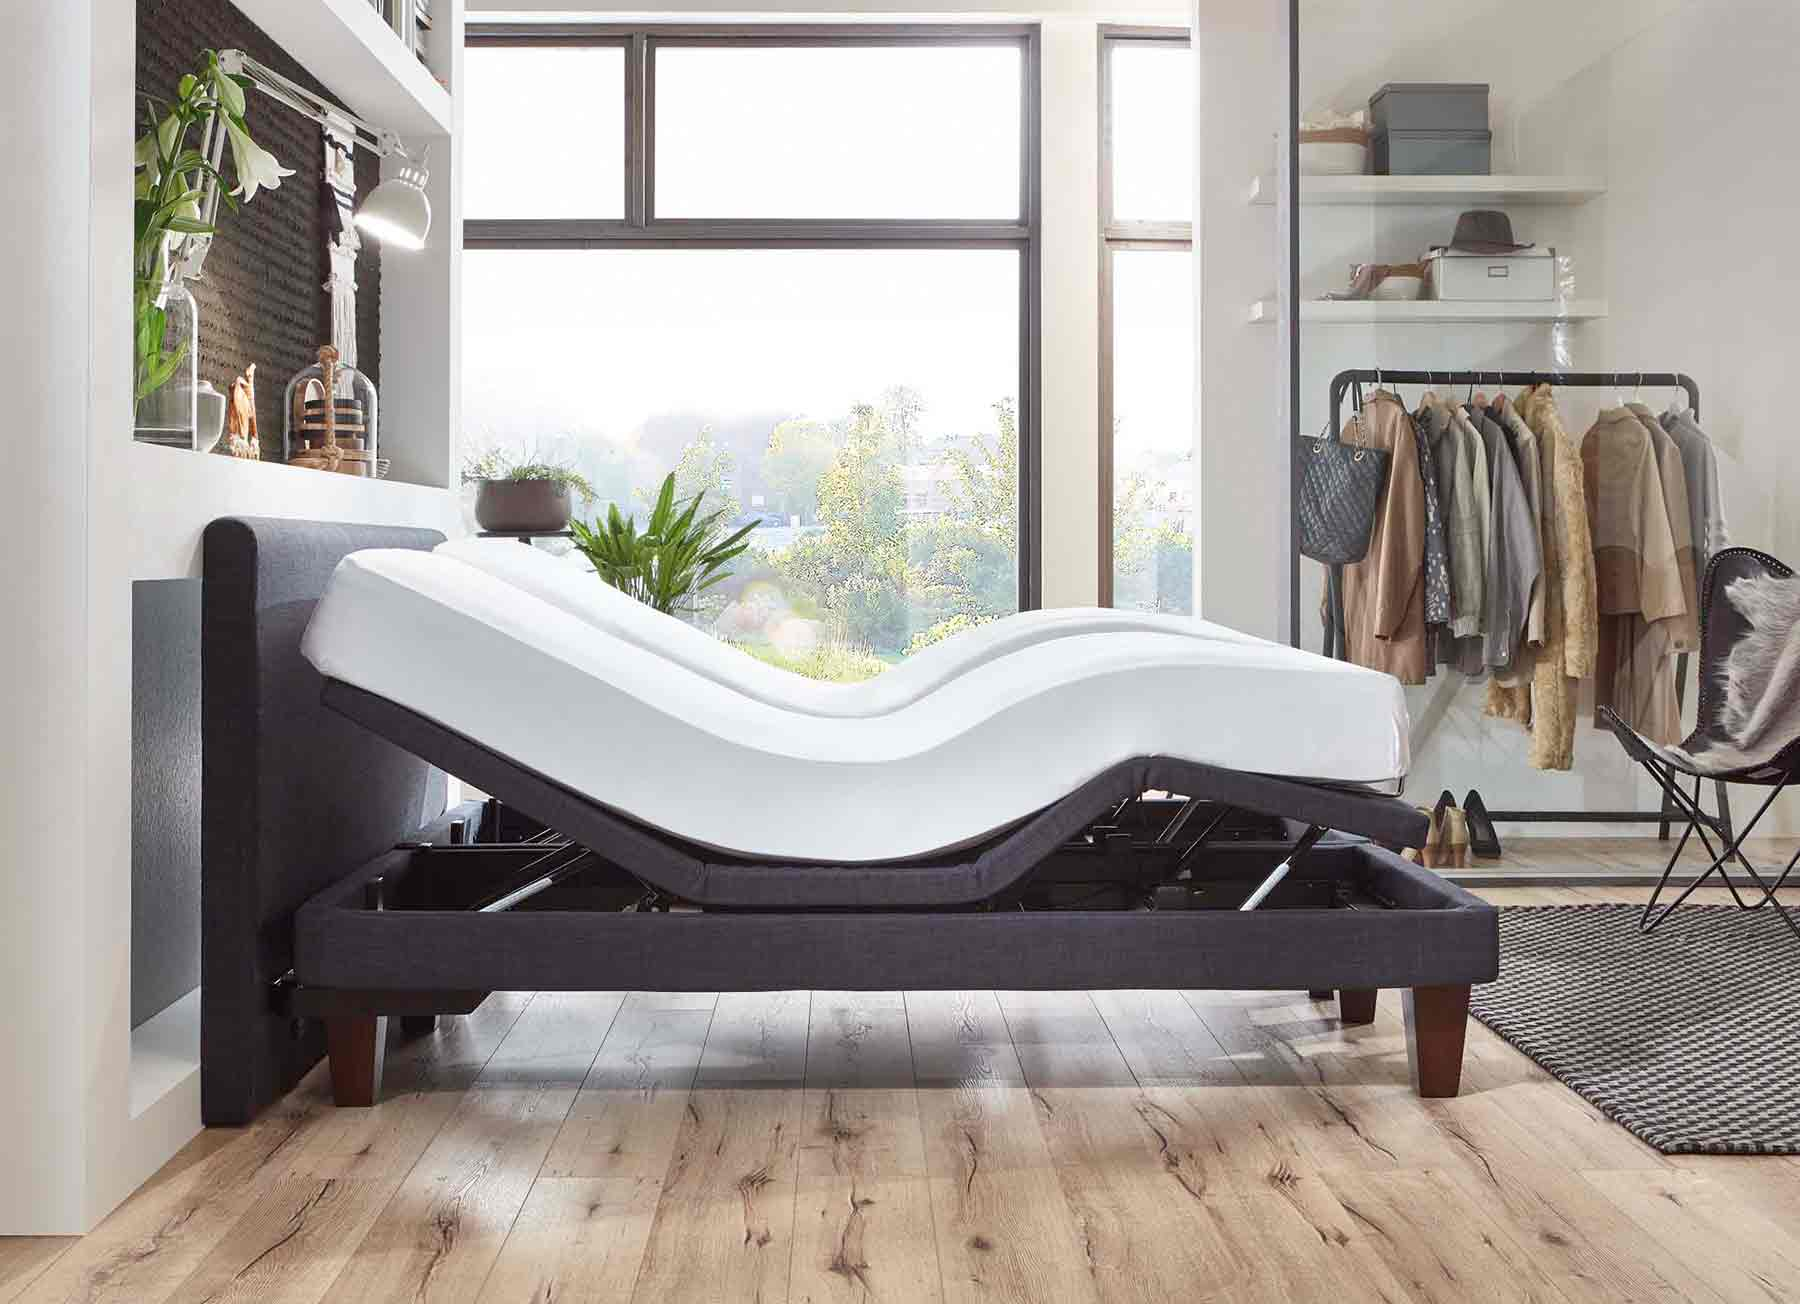 boxspring lattenrost mit massage f r tiefste entspannung schlafstudio helm wien. Black Bedroom Furniture Sets. Home Design Ideas